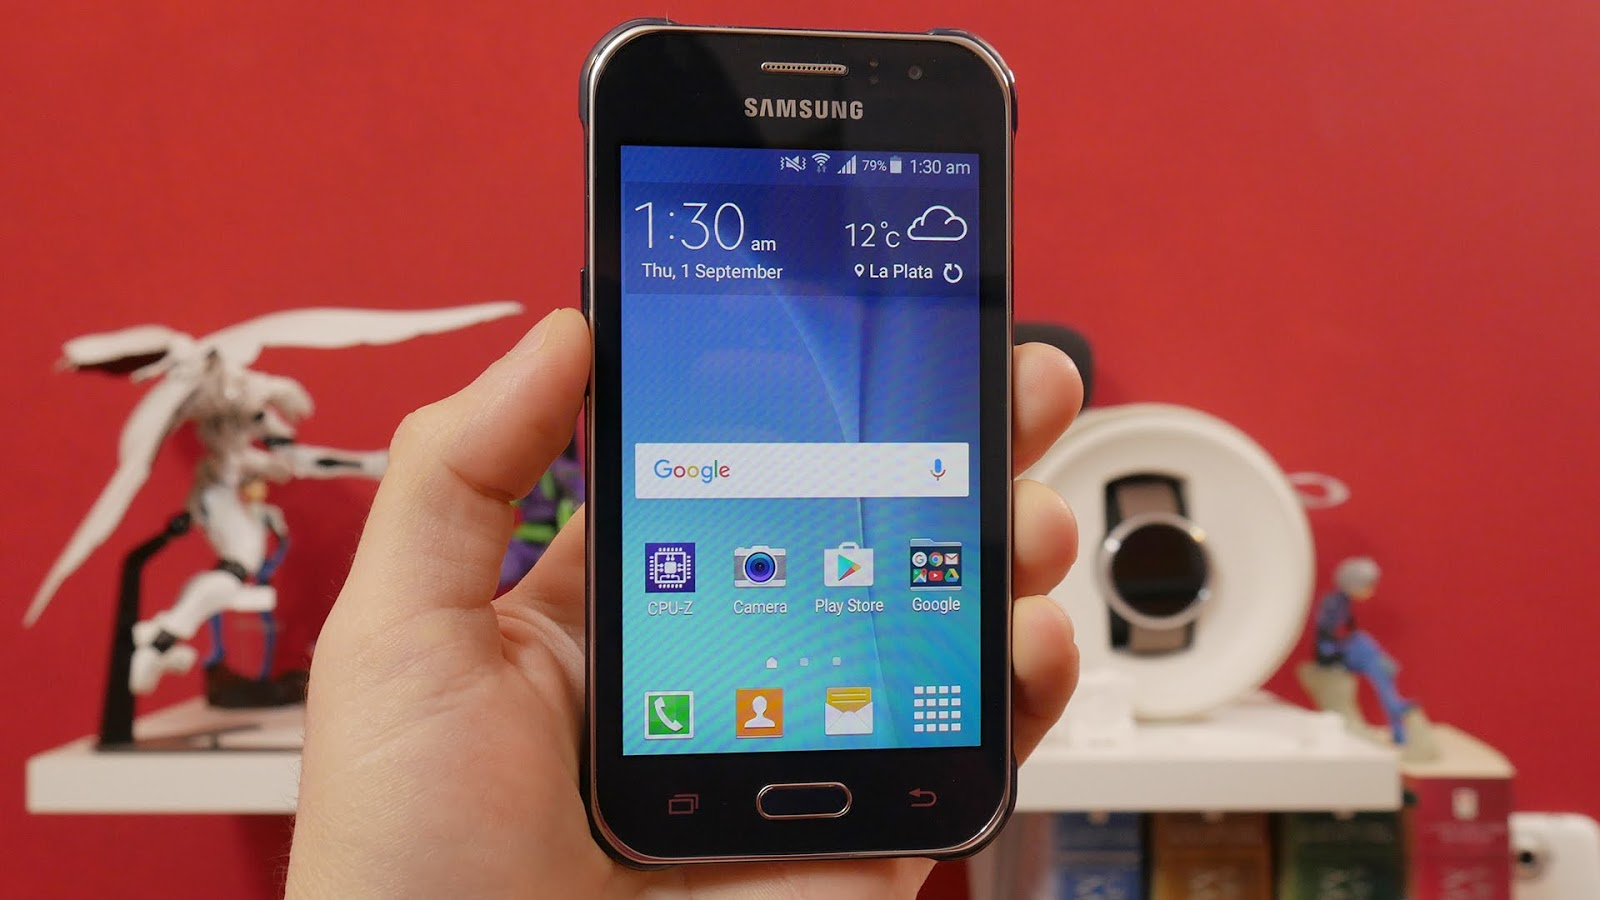 Samsung J1 Software For Pc